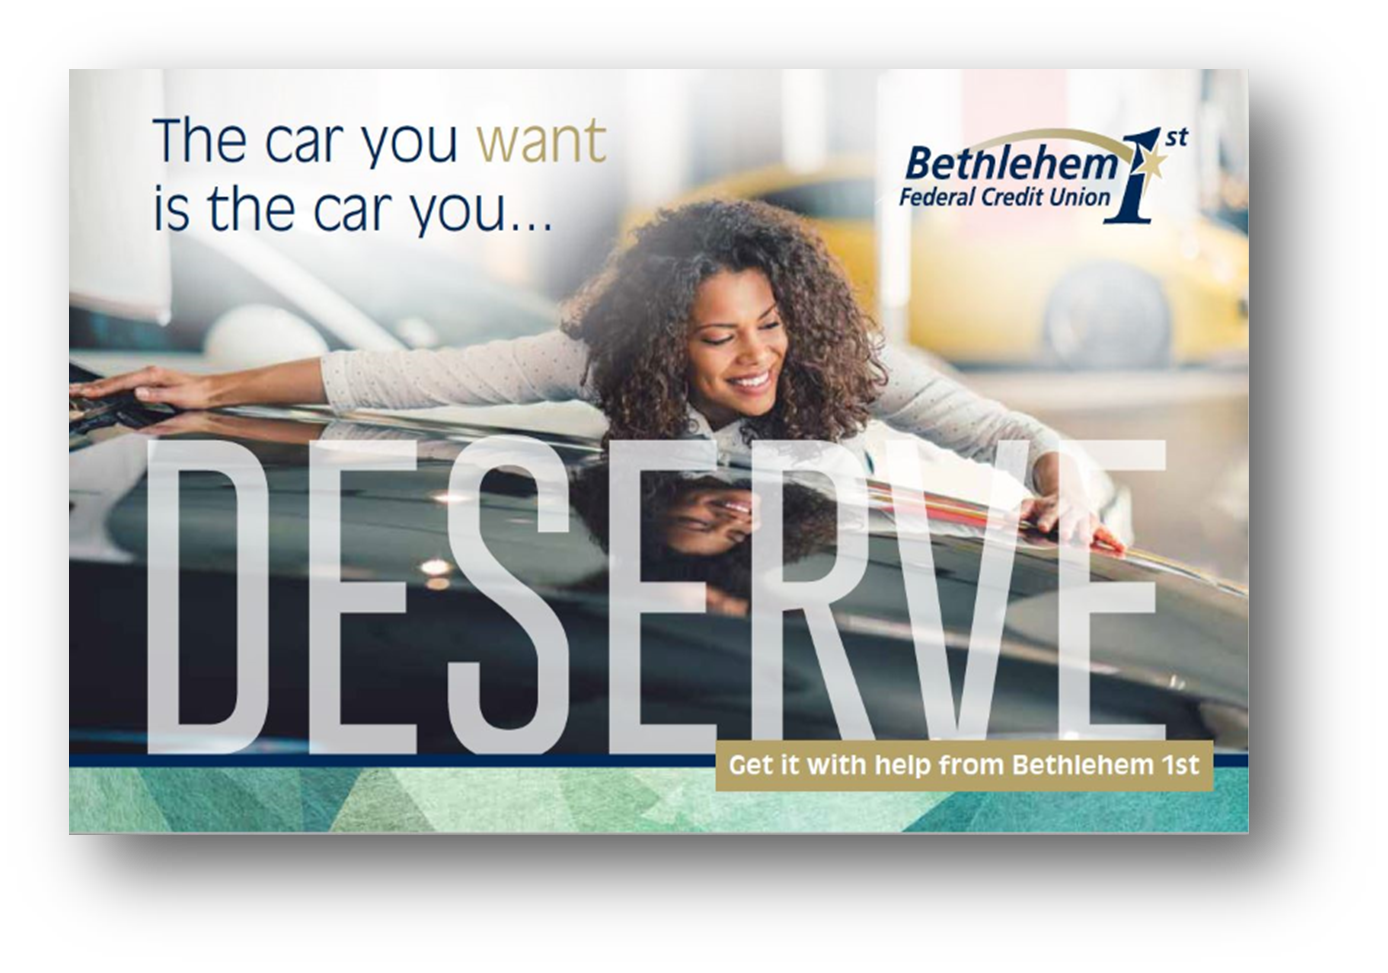 You deserve the car you want